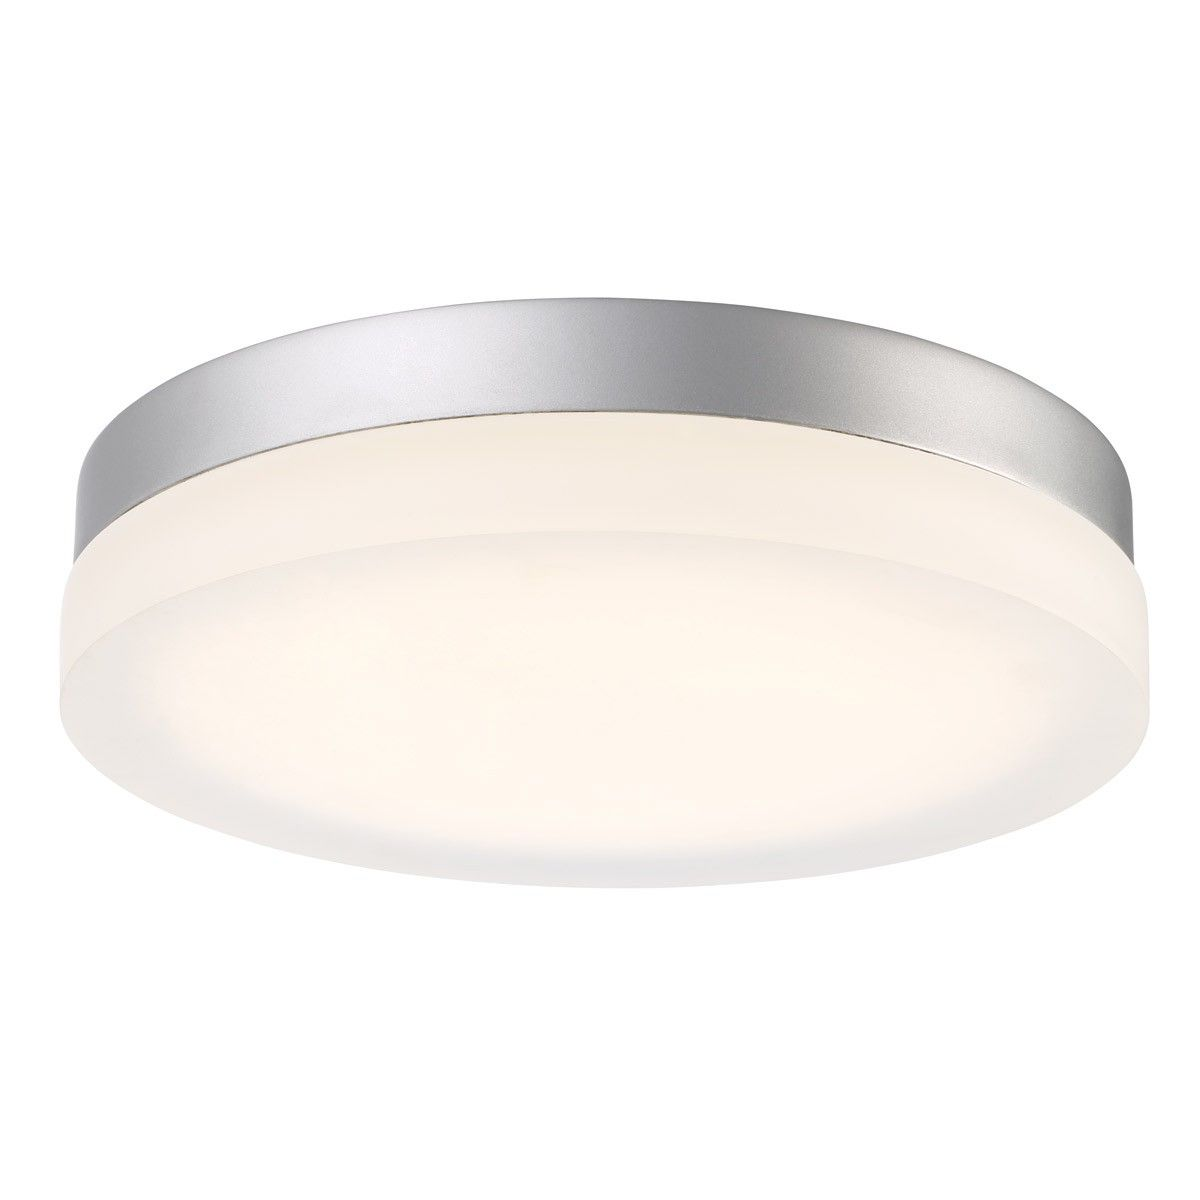 Circa ceiling light led ceiling lights ceiling and lights circa 15 inch led ceiling light arubaitofo Image collections